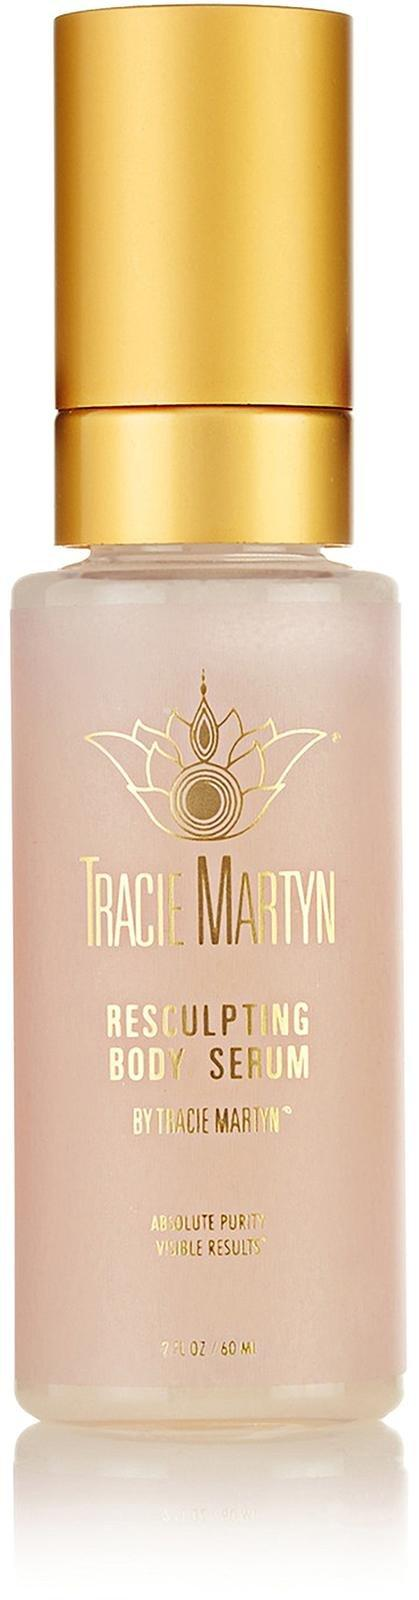 Tracie Martyn Resculpting Body Serum